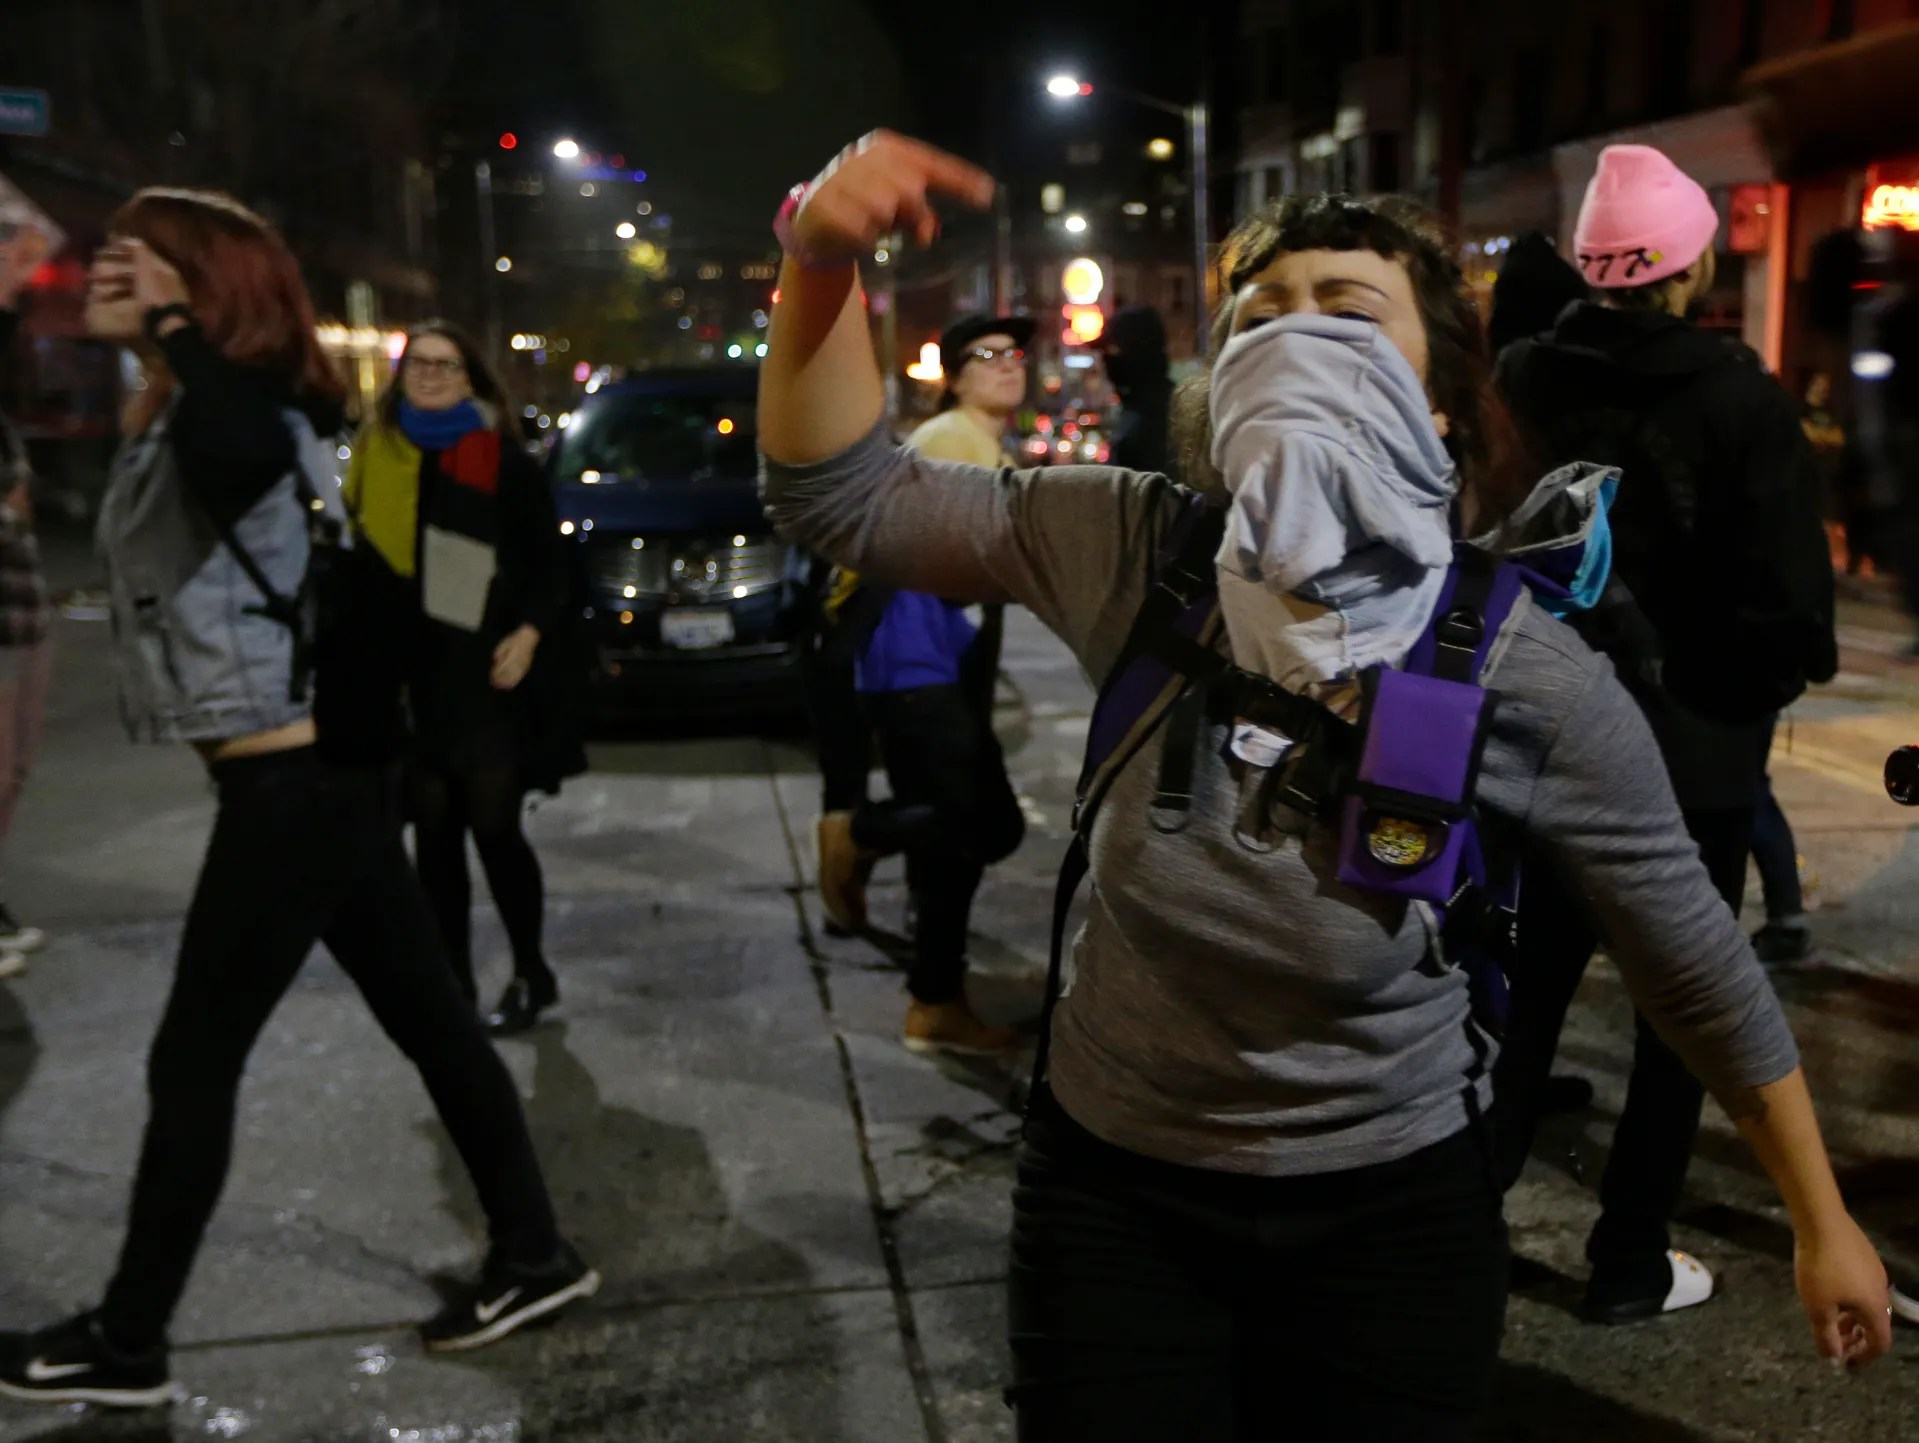 A woman yells as she takes part in a protest against